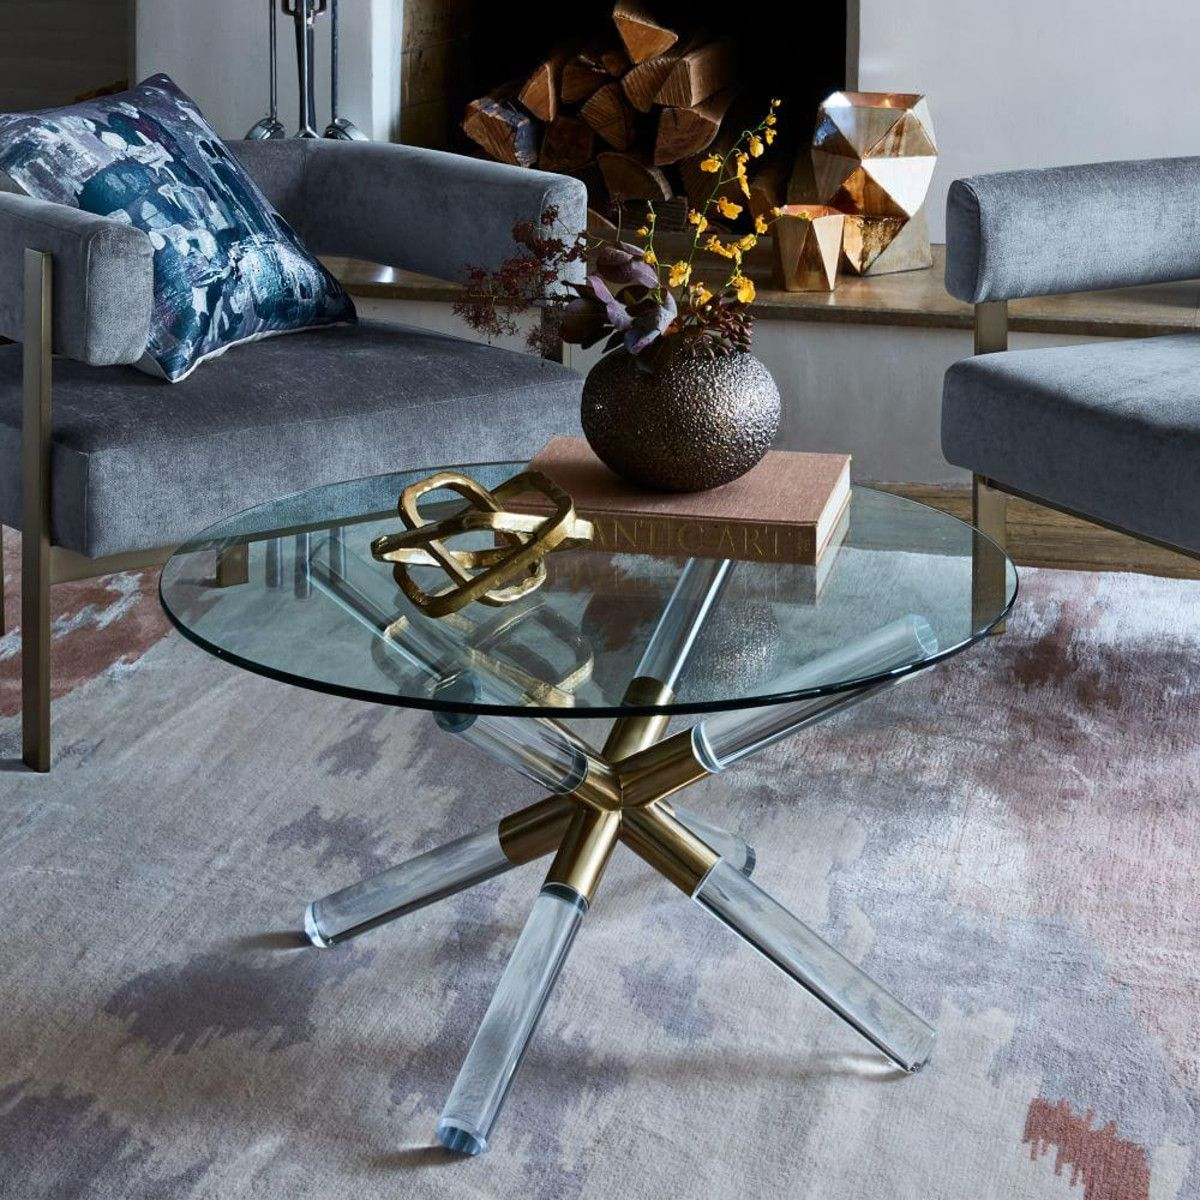 16+ West elm cosima glass coffee table trends